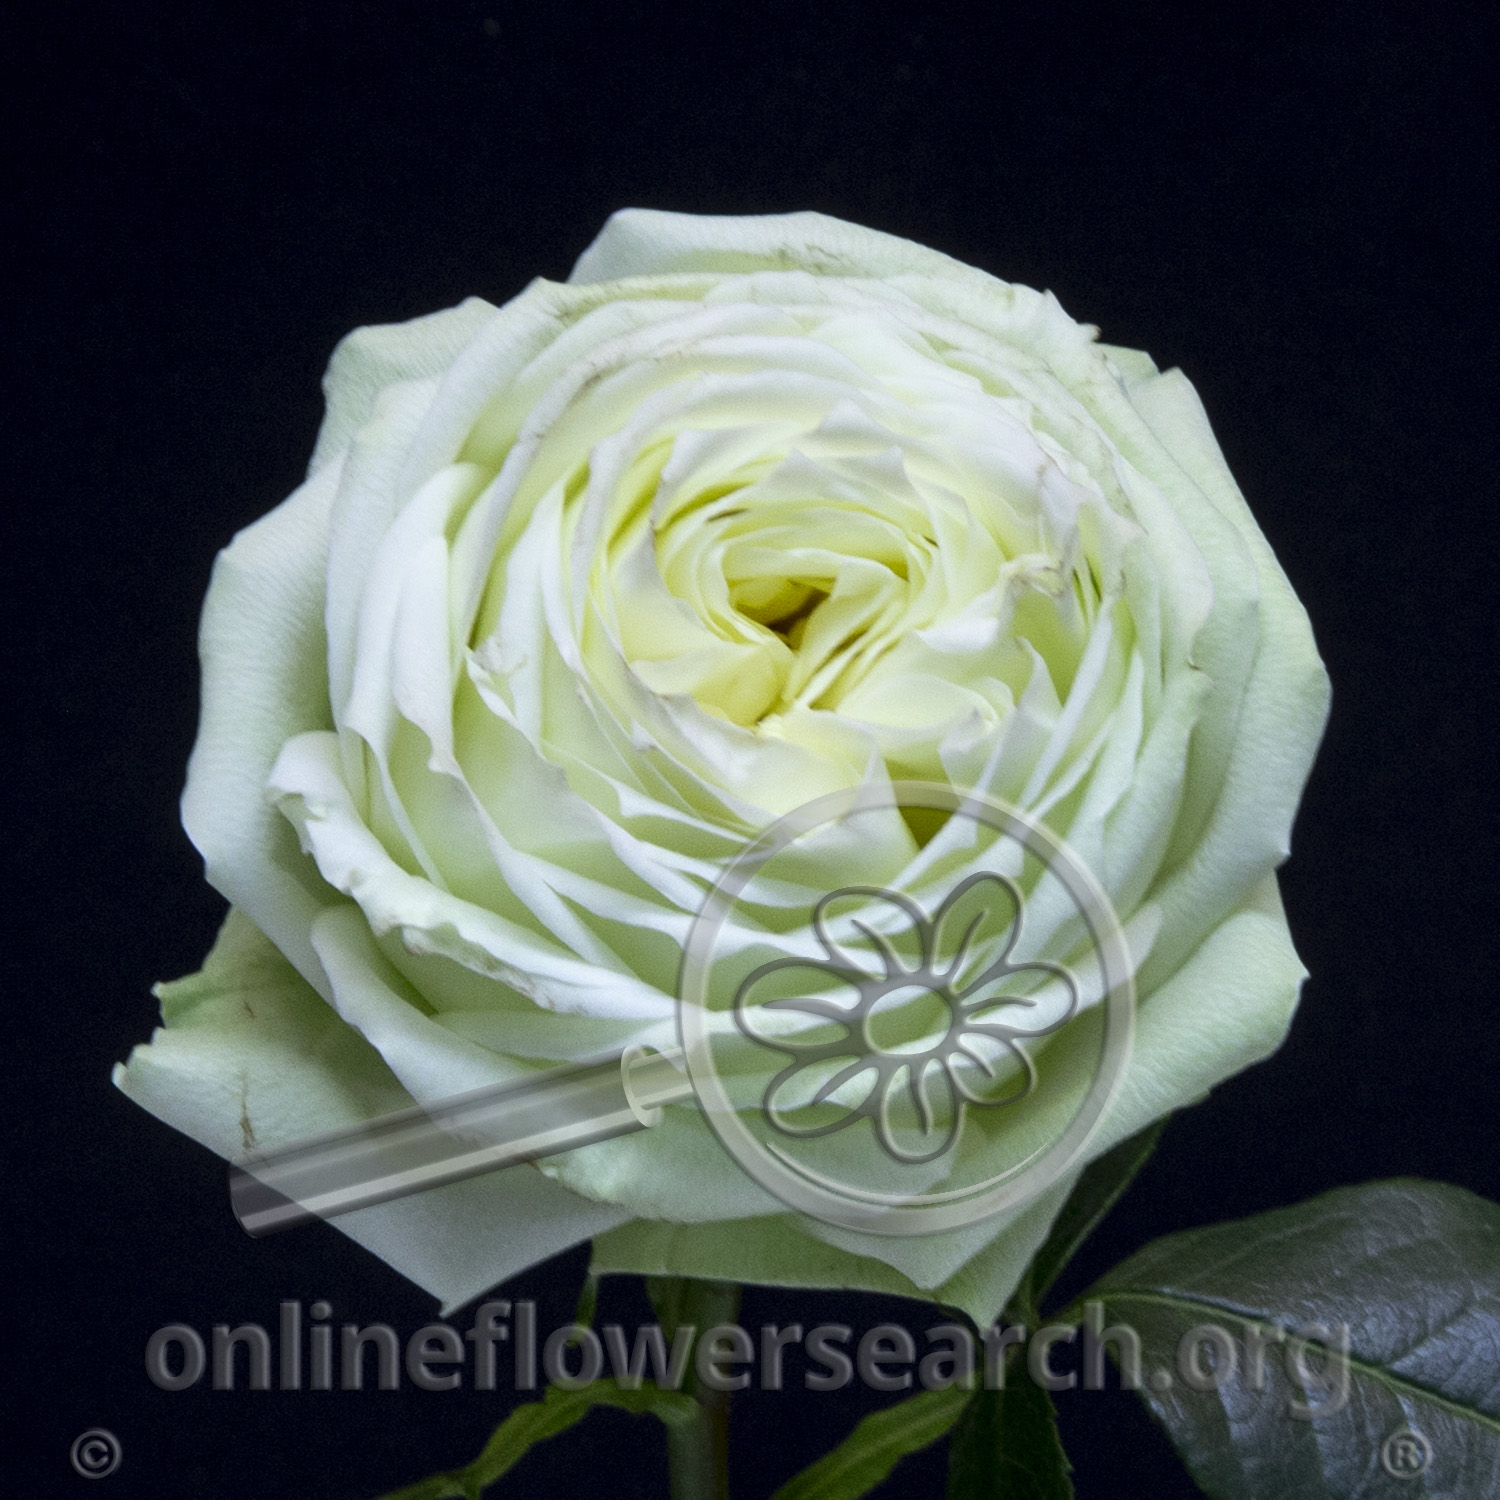 Rose White Piano - Online Flower Search